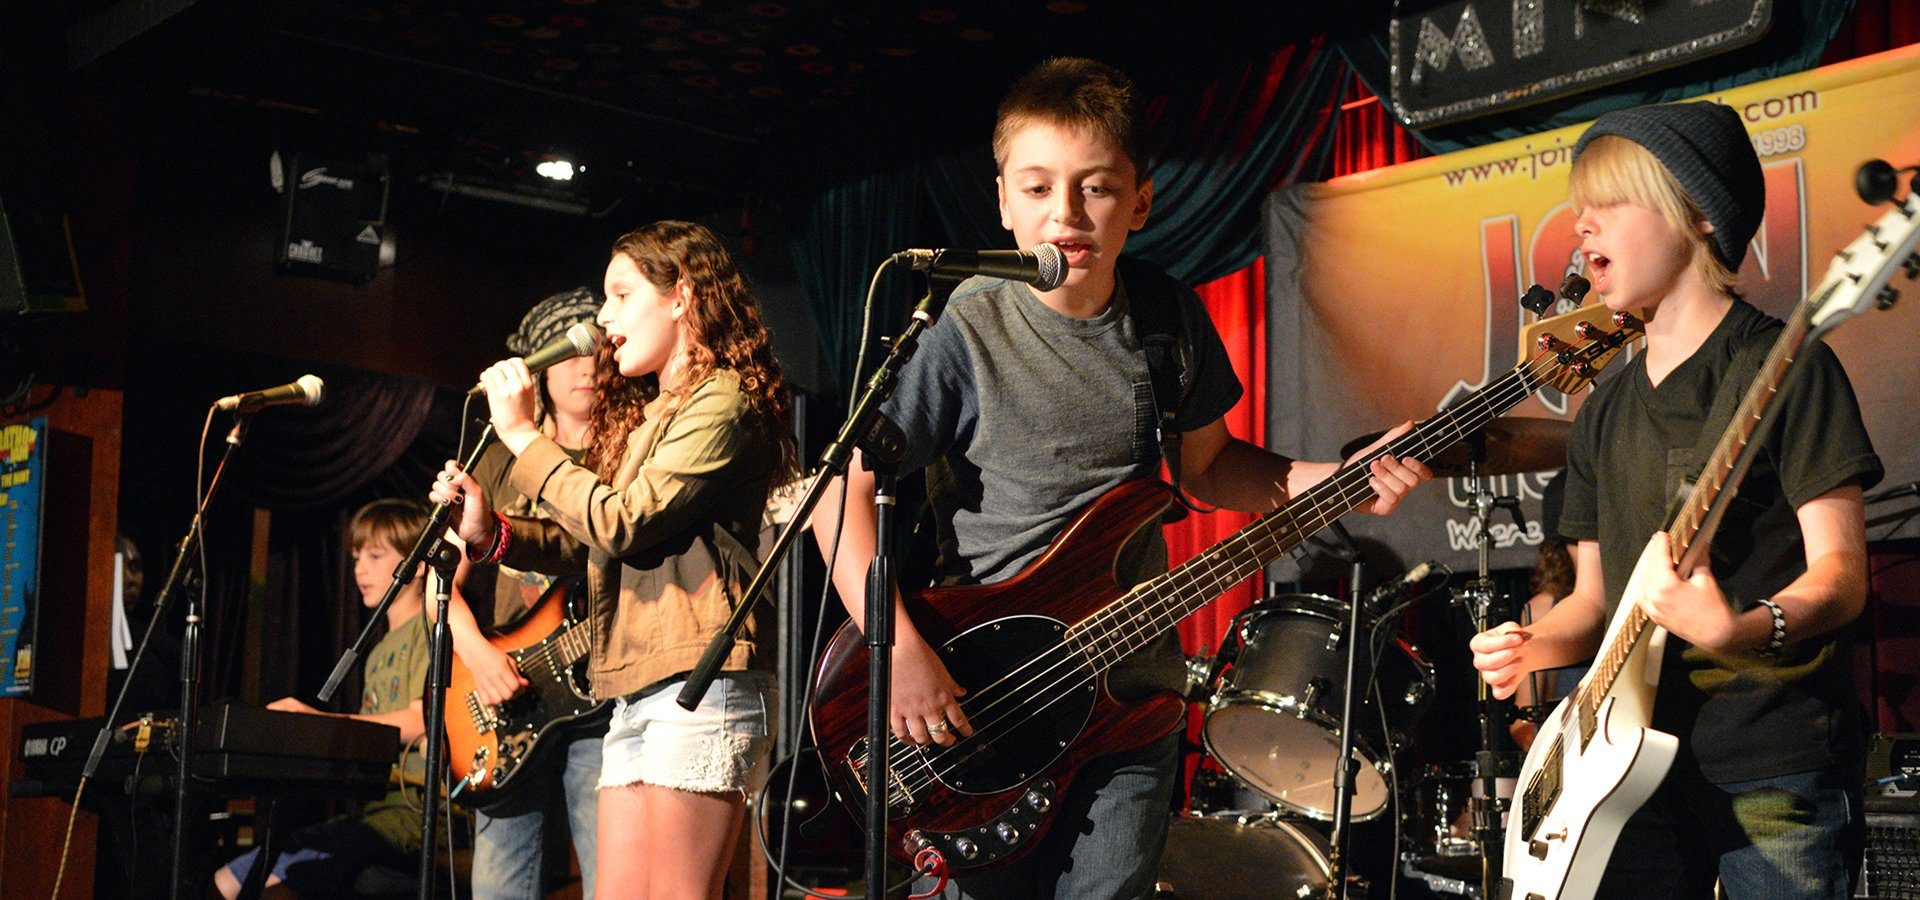 Summer Band Program - Rock Band Music Camp - 5 Kids - Sherman Oaks, Los Angeles - Join The Band